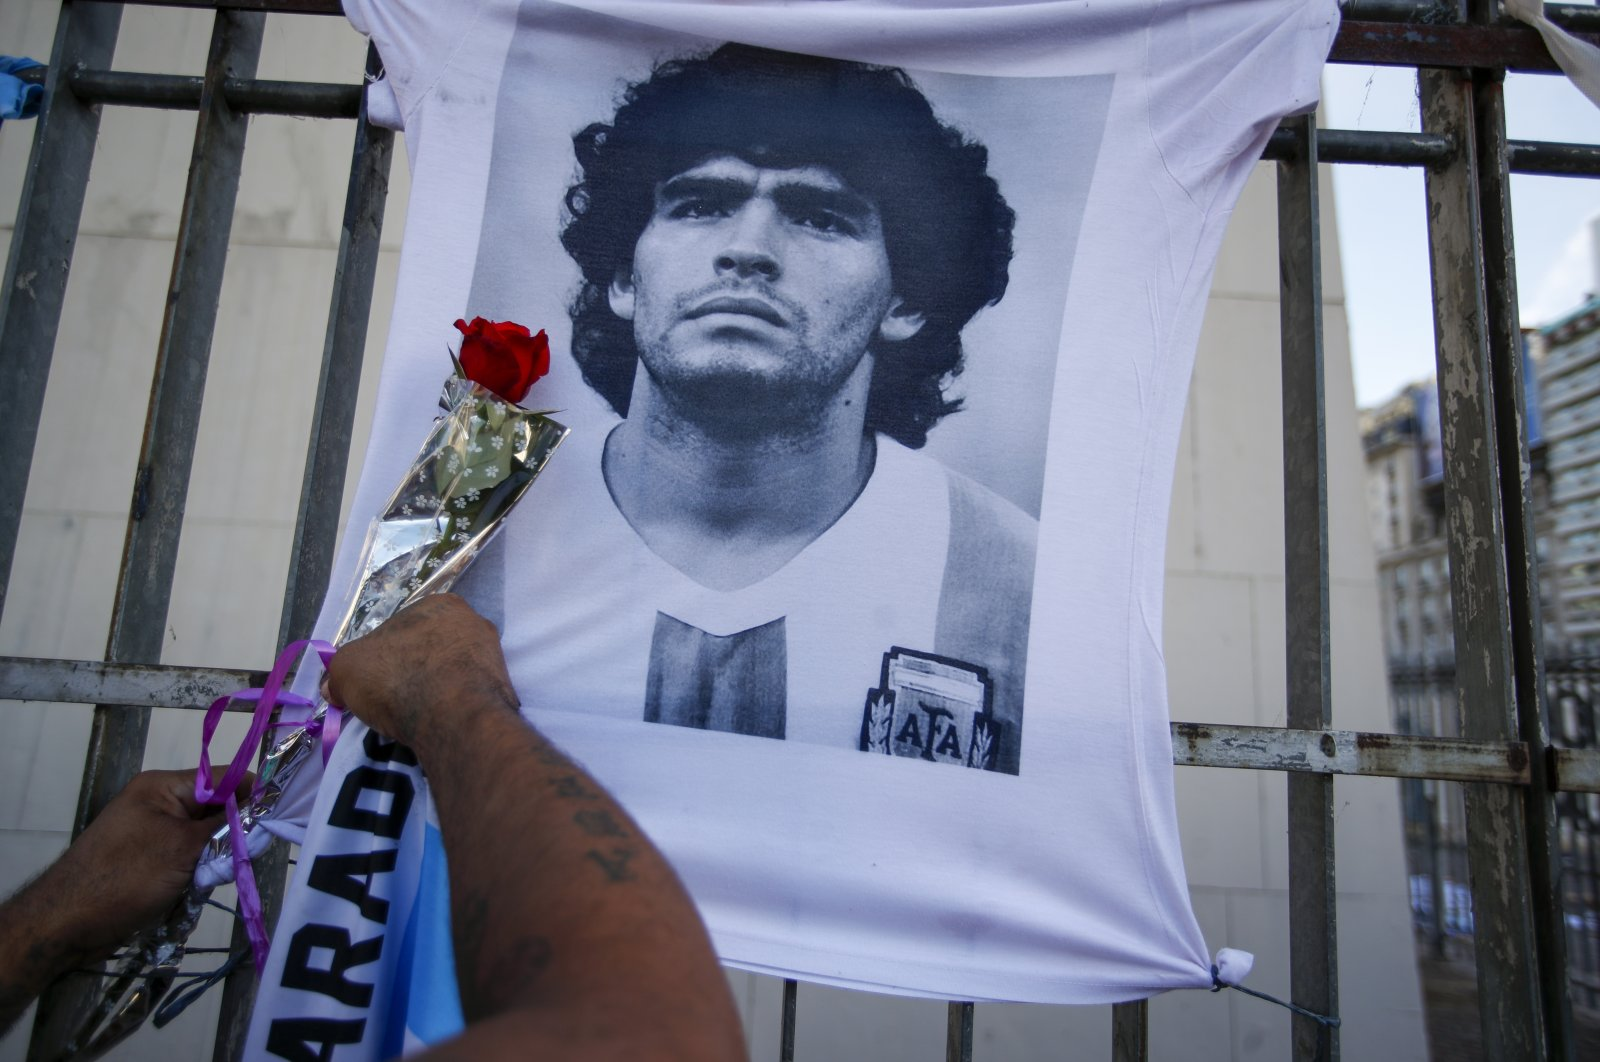 A man places a flower on a jersey with the face of late footballing icon Diego Maradona during a march to demand answers regarding his death, in Buenos Aires, Argentina, March 10, 2021. (AP Photo)